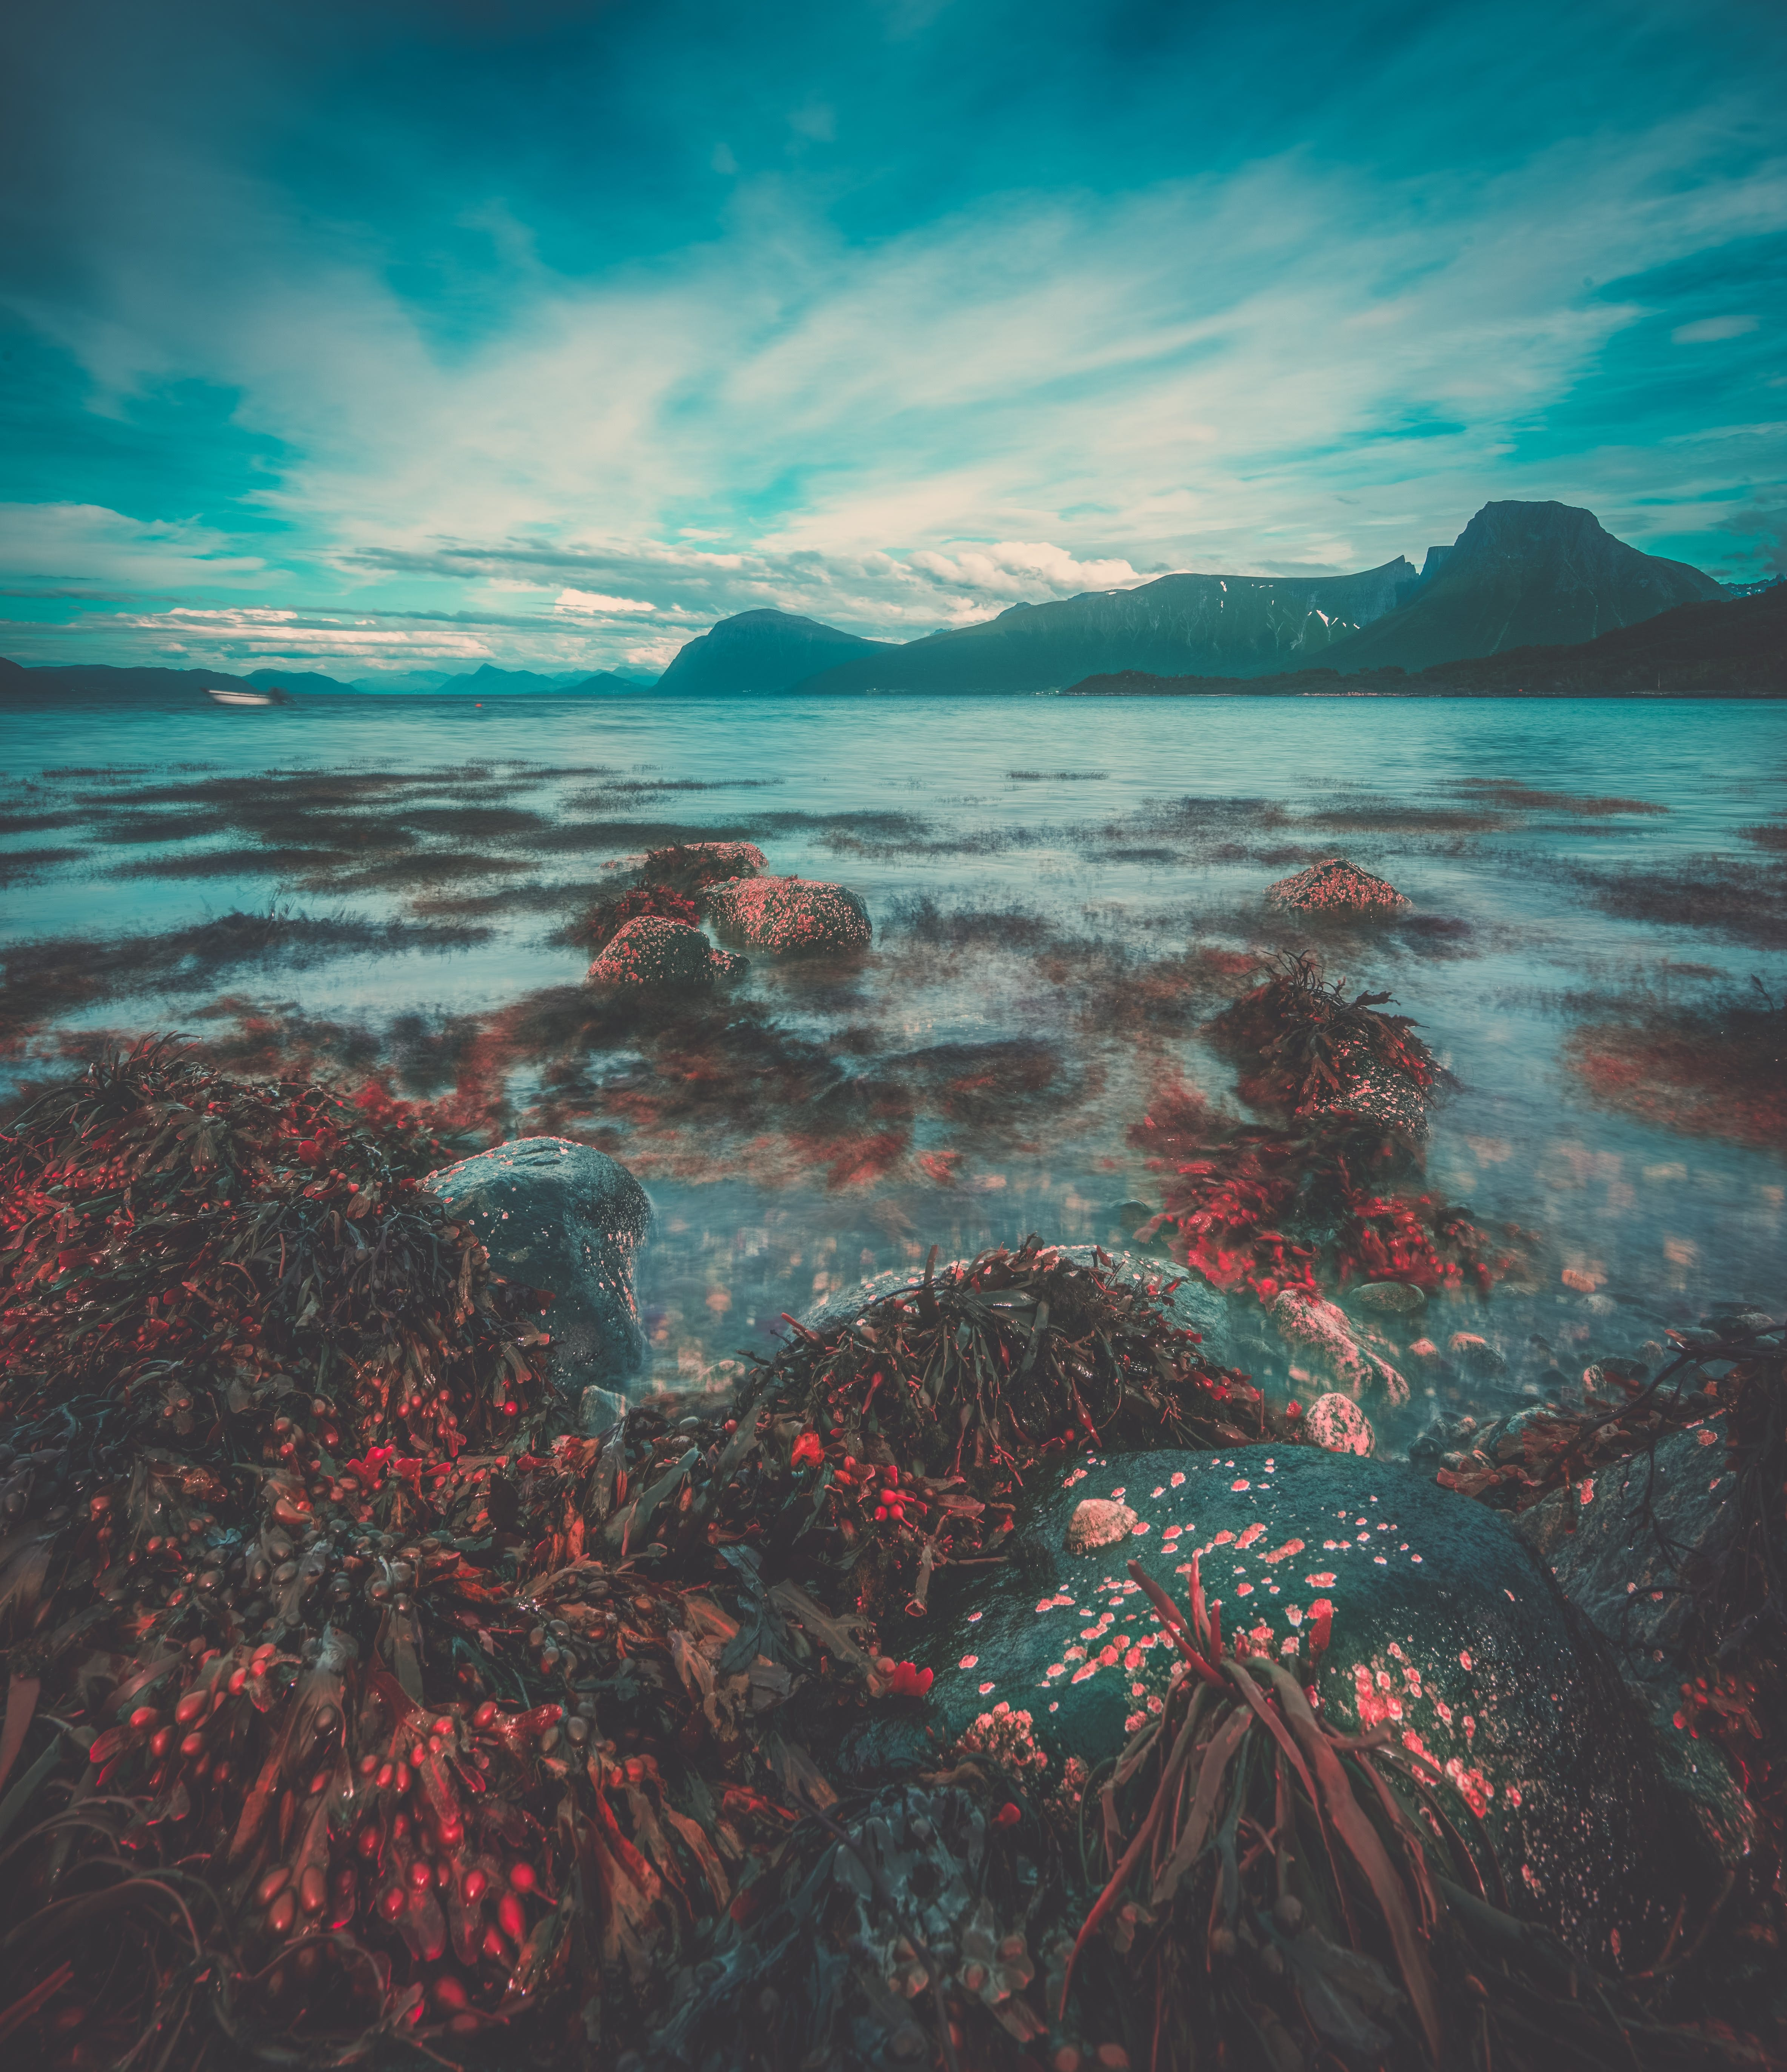 clouds, corals, environment